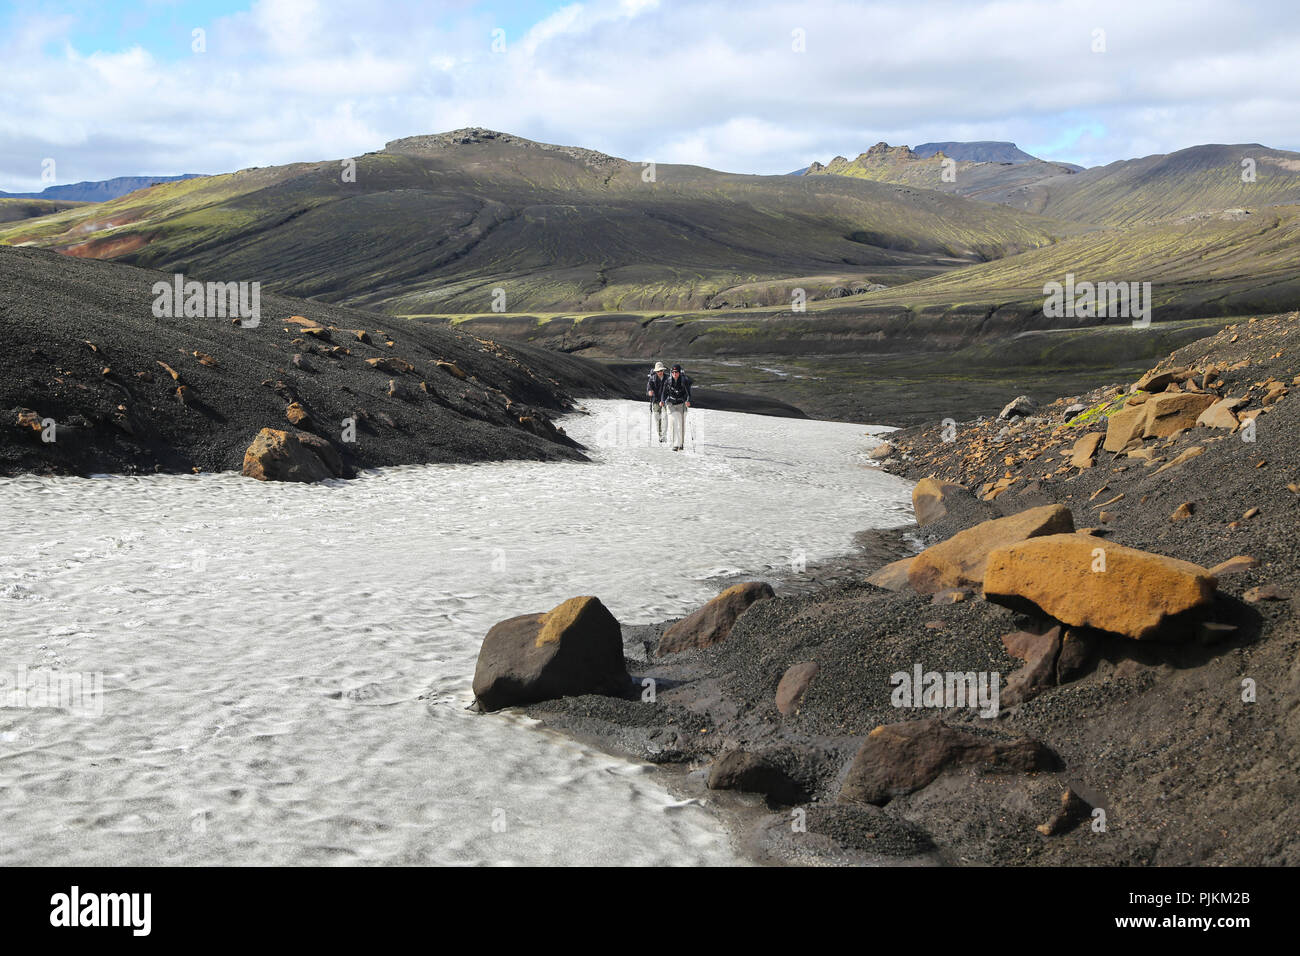 Iceland, two hikers on a snow field in the lava desert, mountains in the background, black sand and orange stones - Stock Image